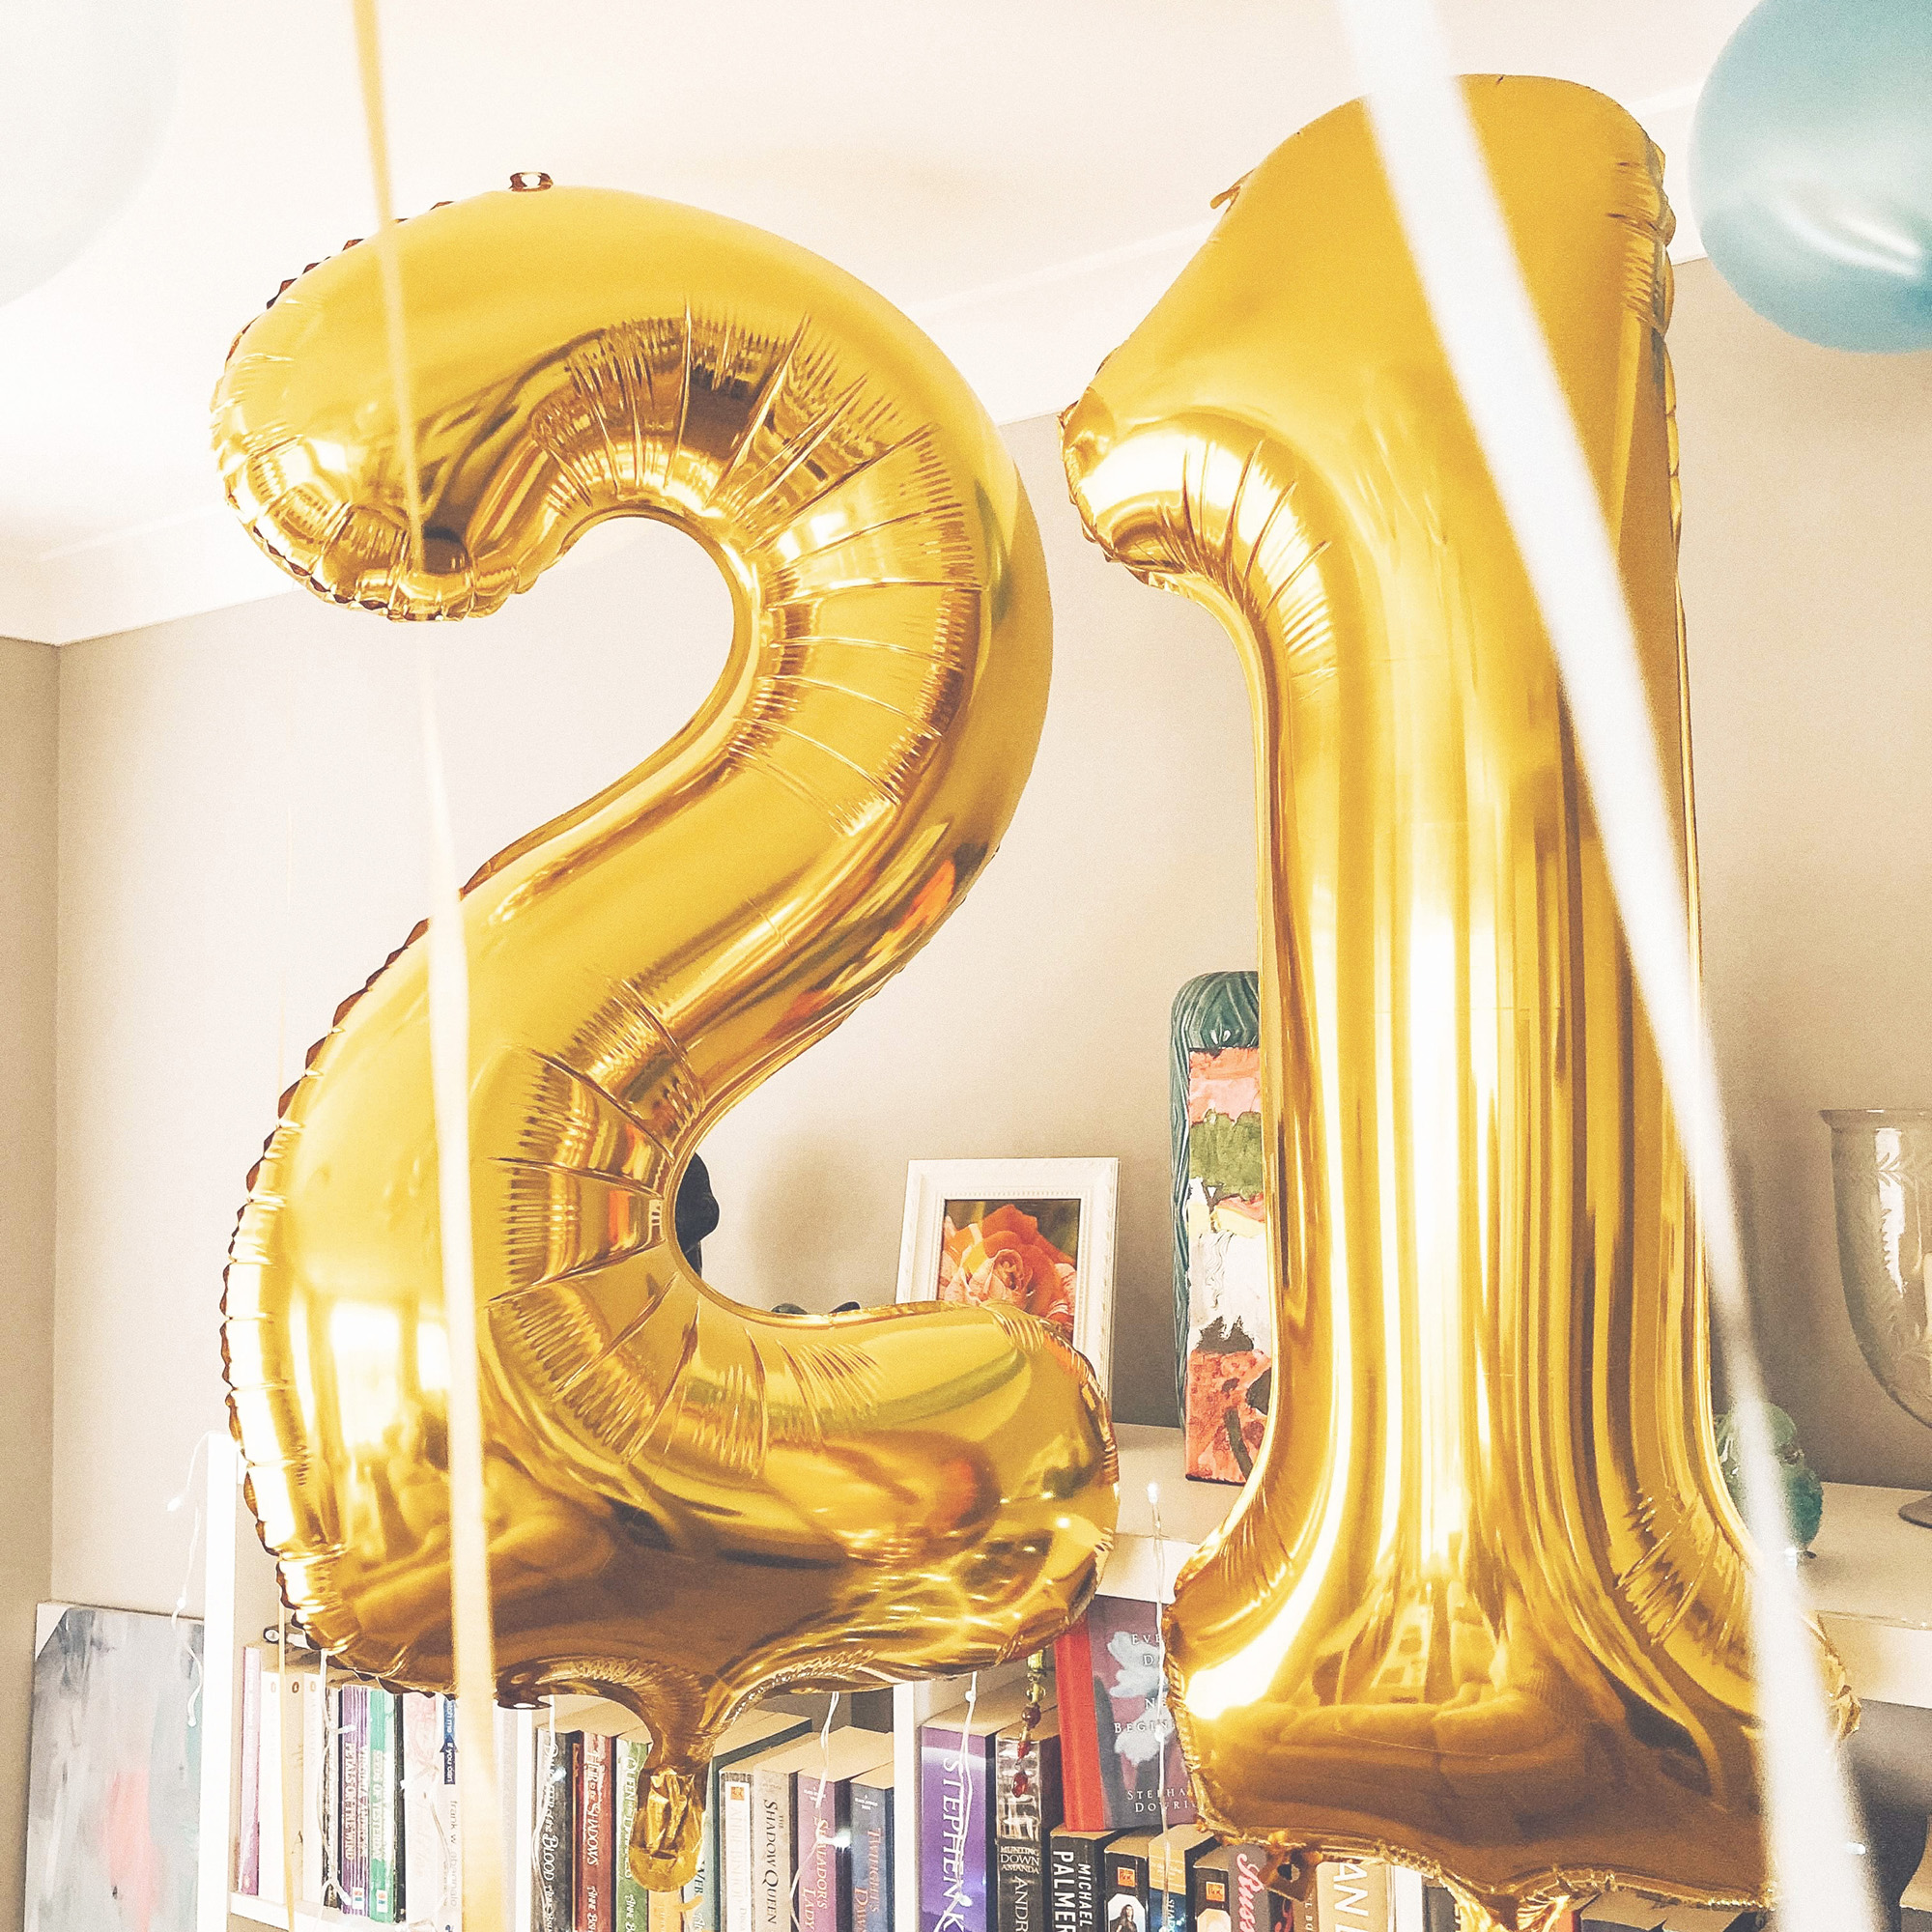 Gold balloons number 21 by Kortnee Greenfield via Unsplash